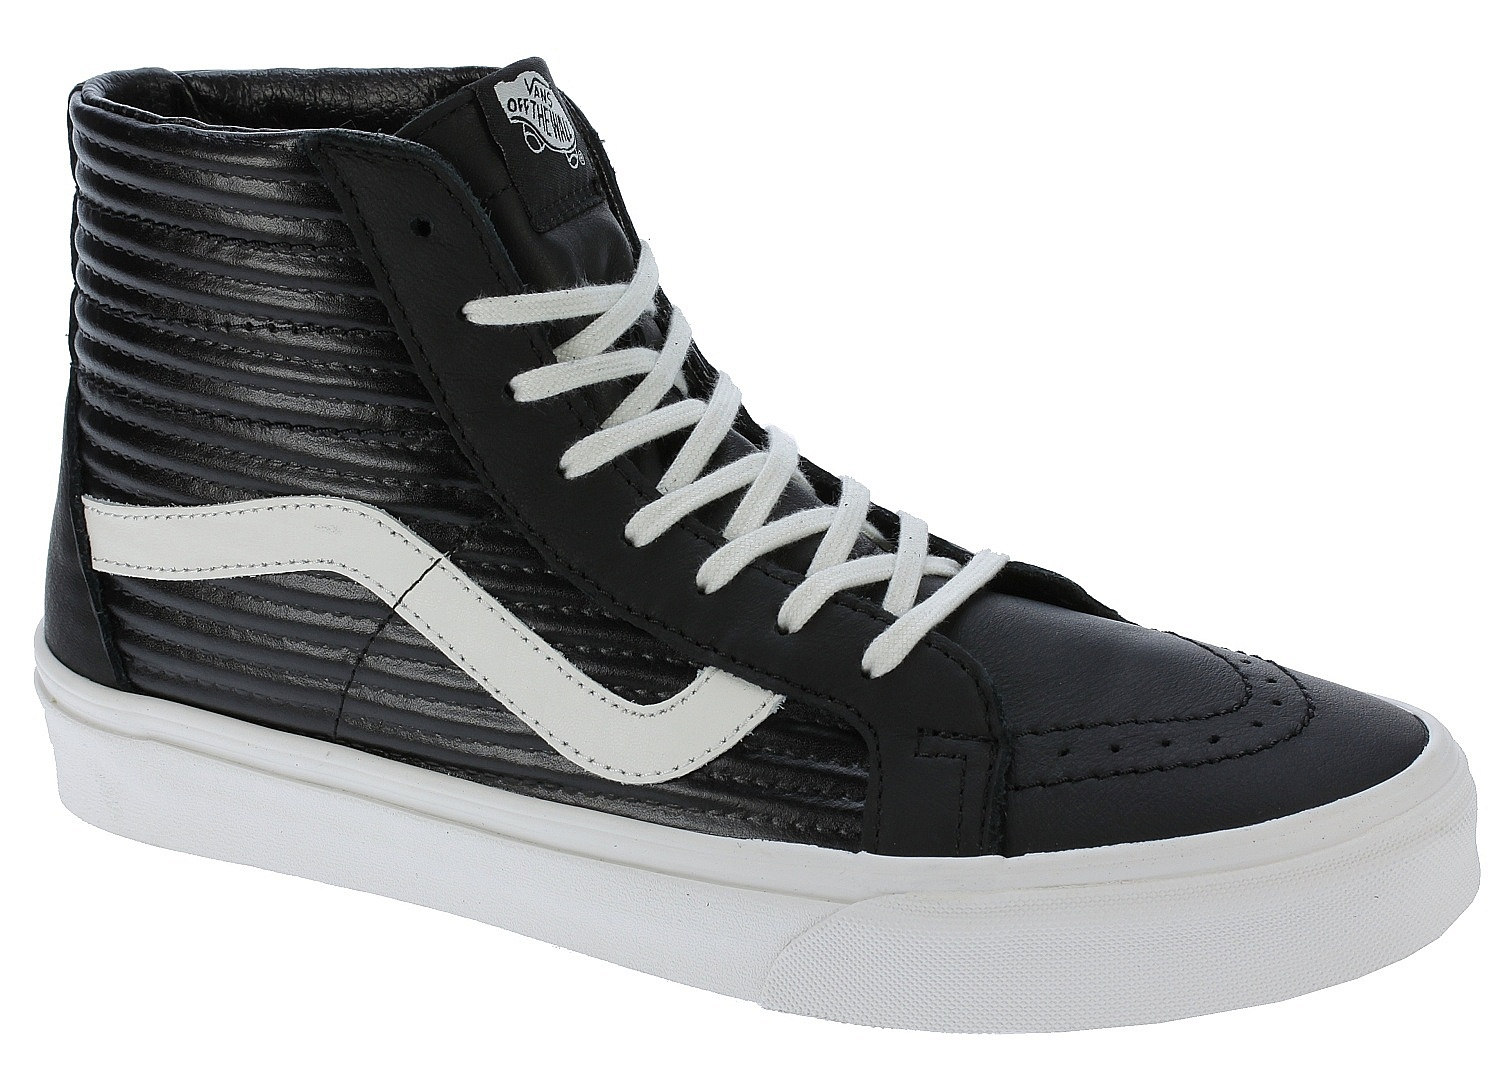 2bc65d4bf7c5 shoes Vans Sk8-Hi Reissue - Moto Leather/Black/Blanc De Blanc - Snowboard  shop, skateshop - snowboard-online.eu